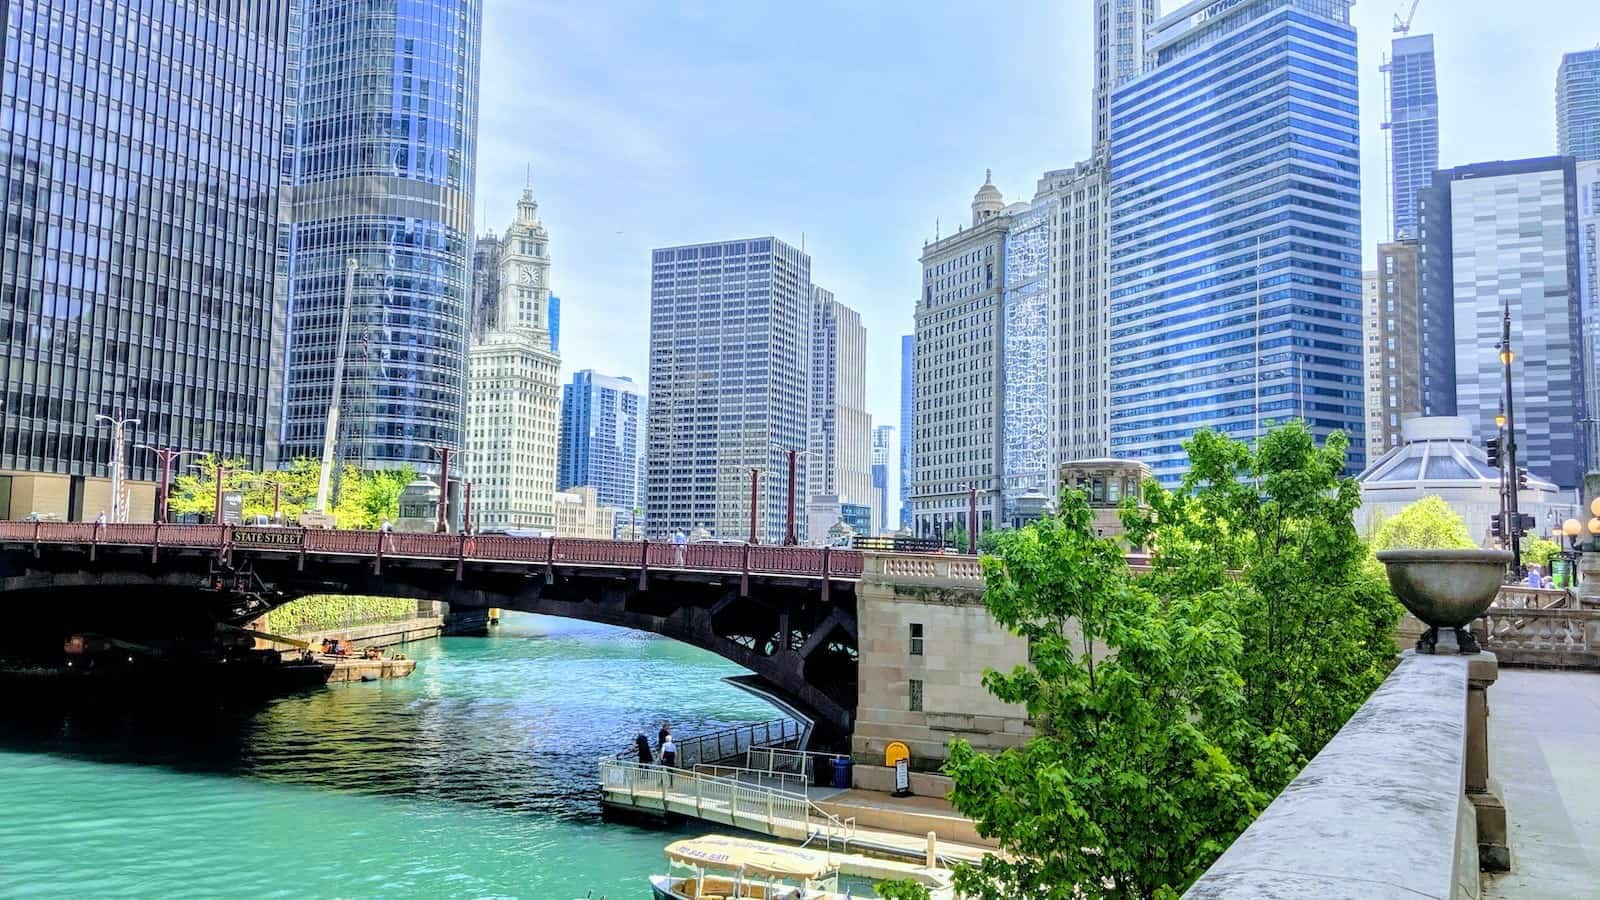 Chicago 2019 - Chicago Riverwalk Looking West